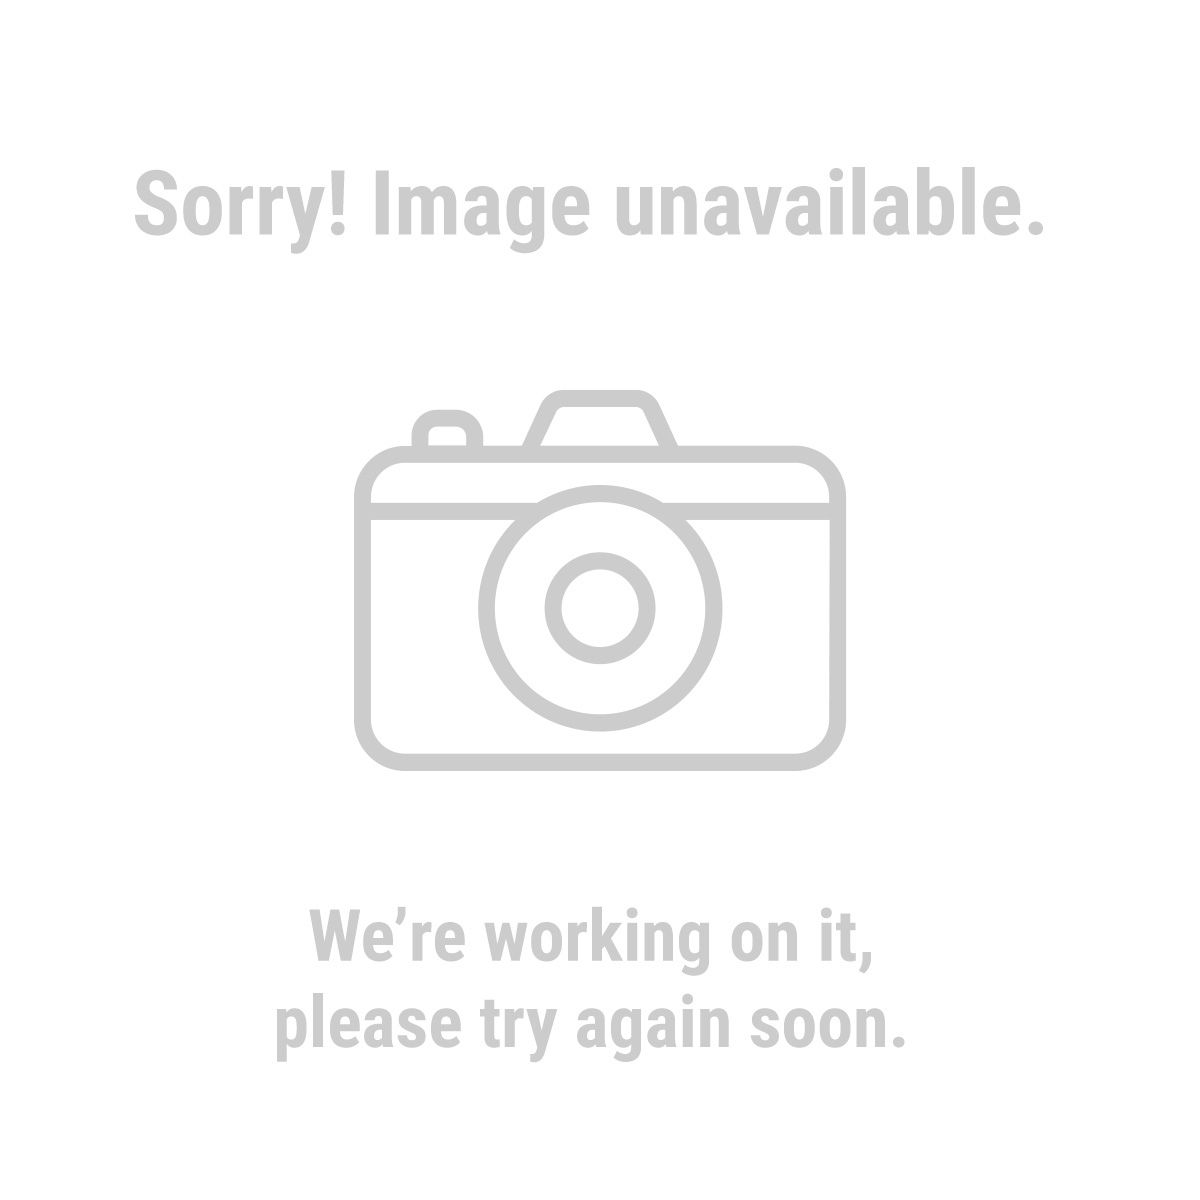 Haul Master Automotive 66983 500 Lb. Capacity Deluxe Cargo Carrier